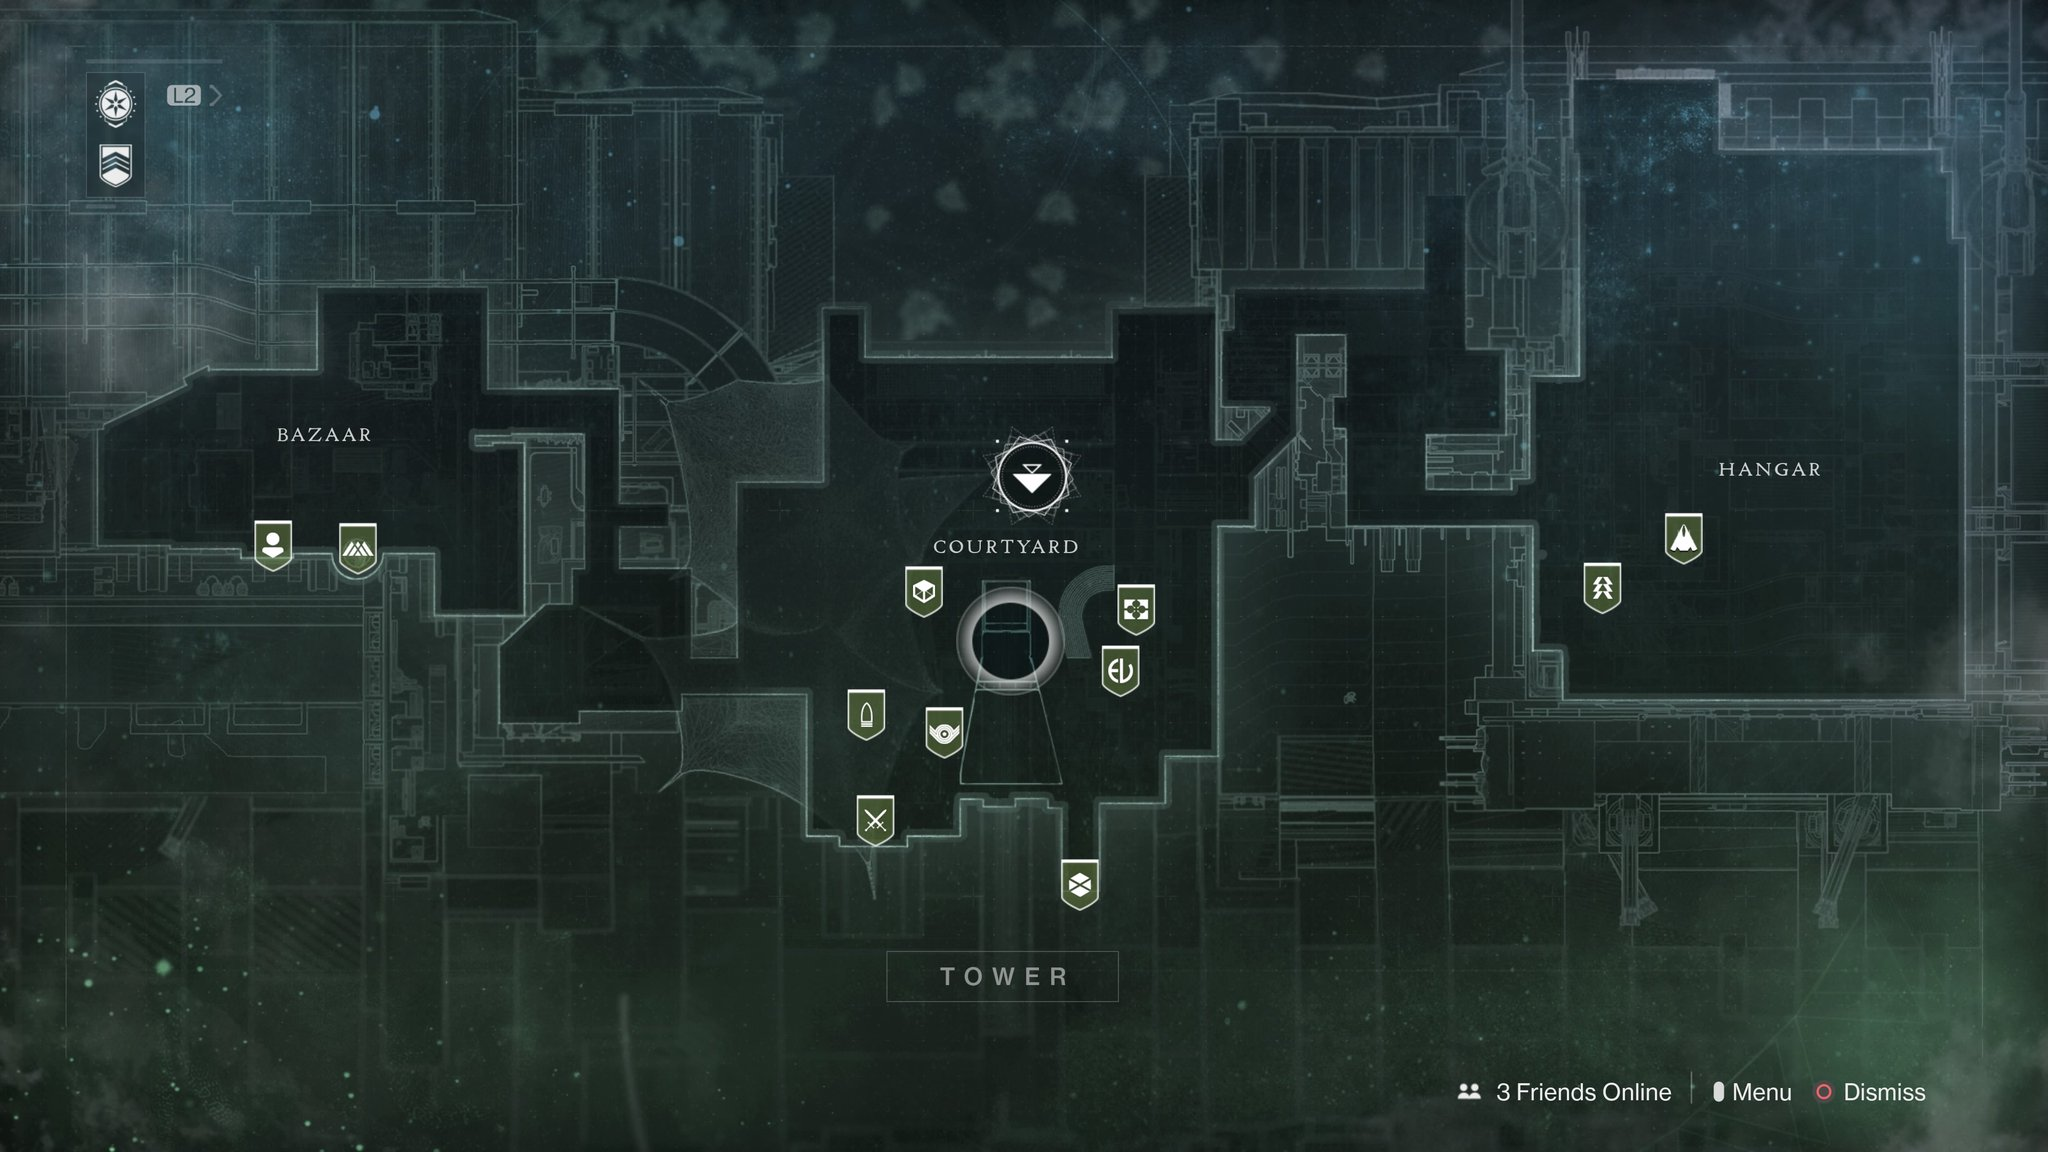 destiny 2 network troubleshooting guide